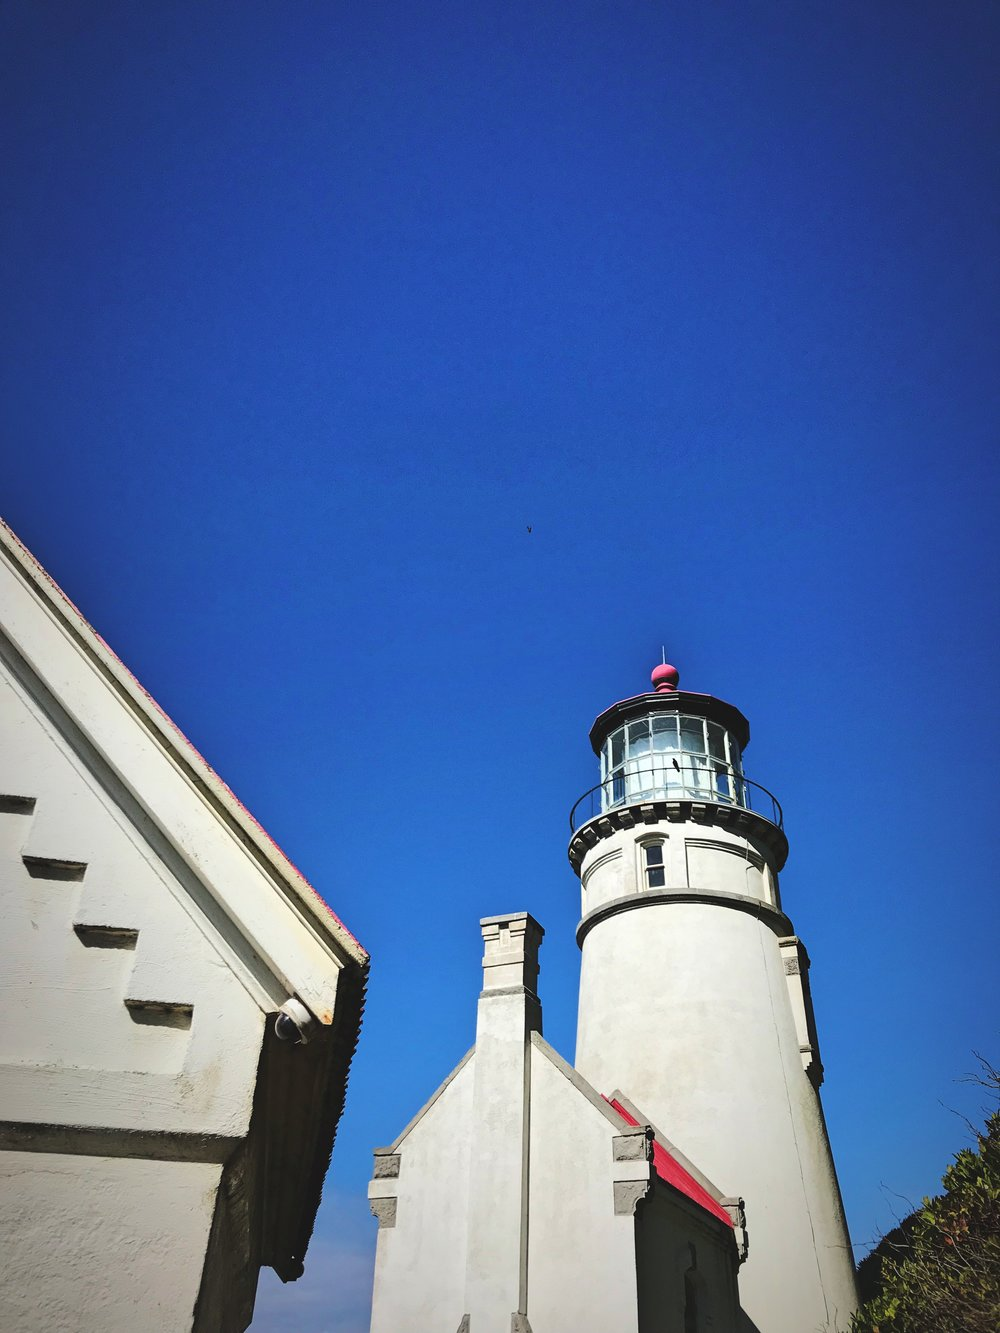 Besides the lighthouse, there are a lot of old out buildings and keepers' residence to check out.